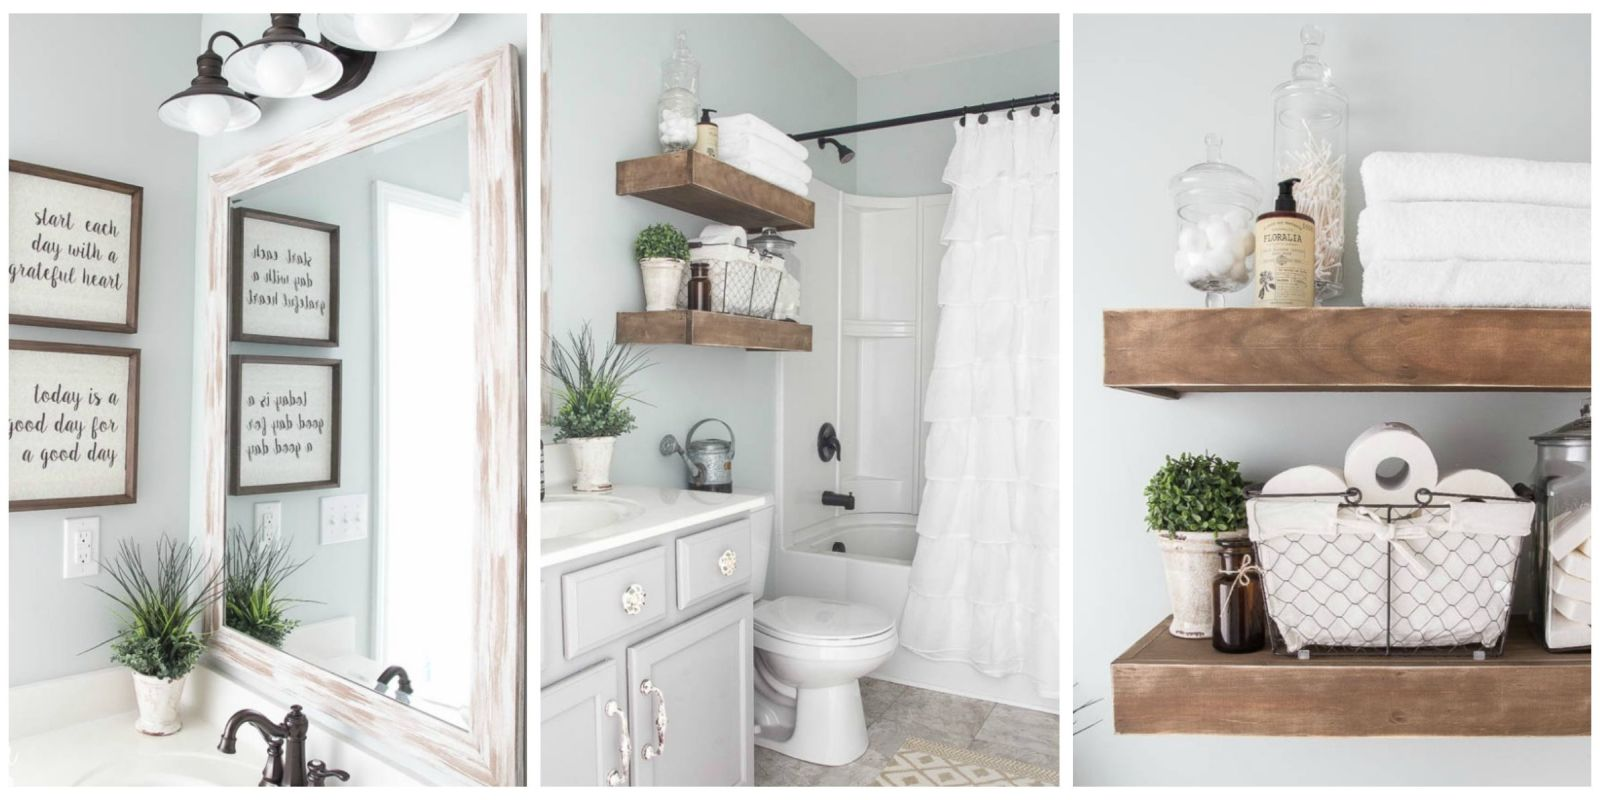 Remodel Bathroom Blog farmhouse bathroom renovation ideas - bless'er house blog bathroom